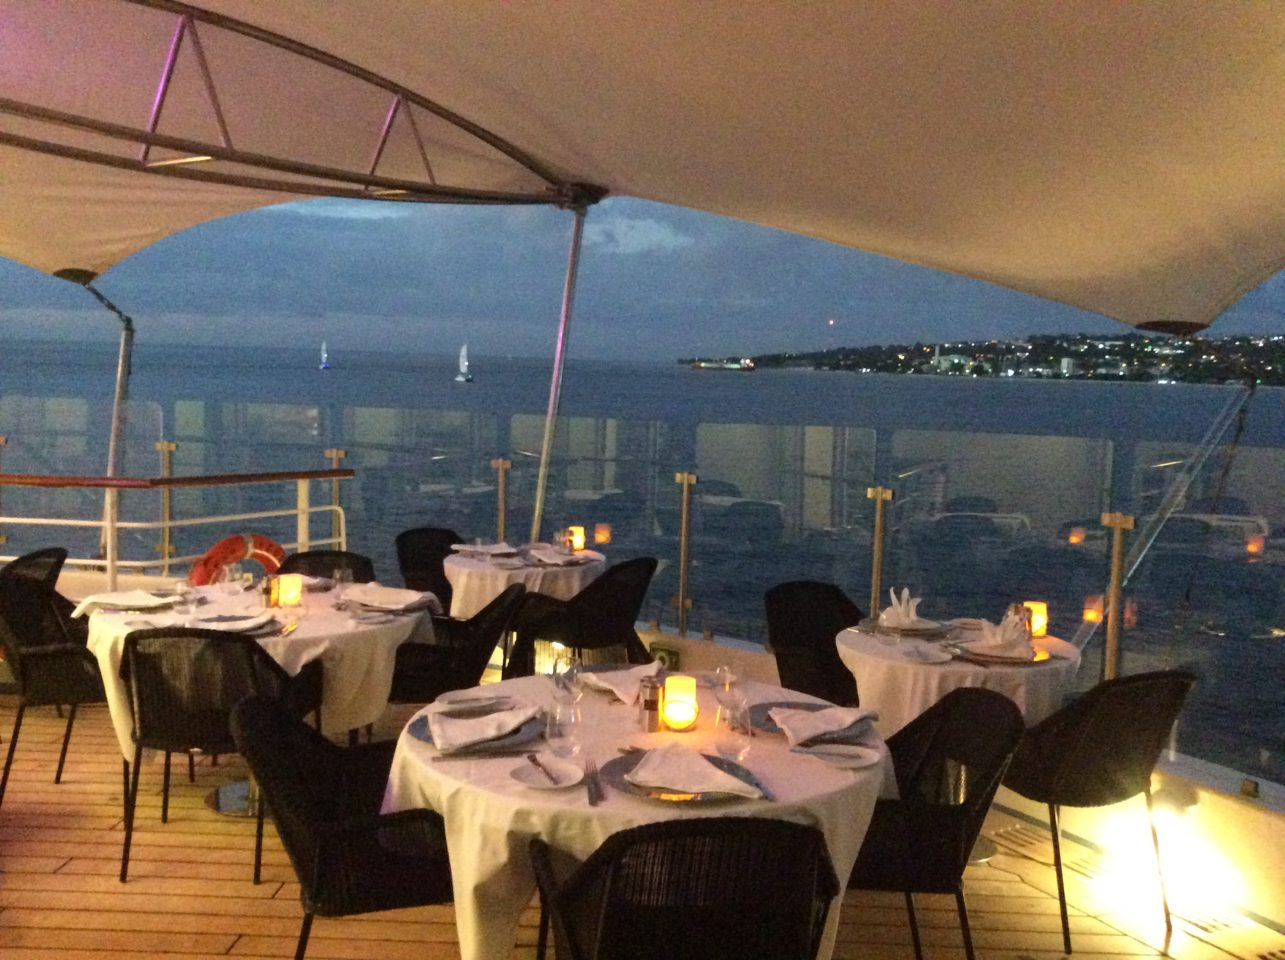 Windstar Cruises Star Legend ~ leaving Barbados ~ dining al fresco at Candles while enjoying glorious views and gentle sea breezes ... a taste of paradise